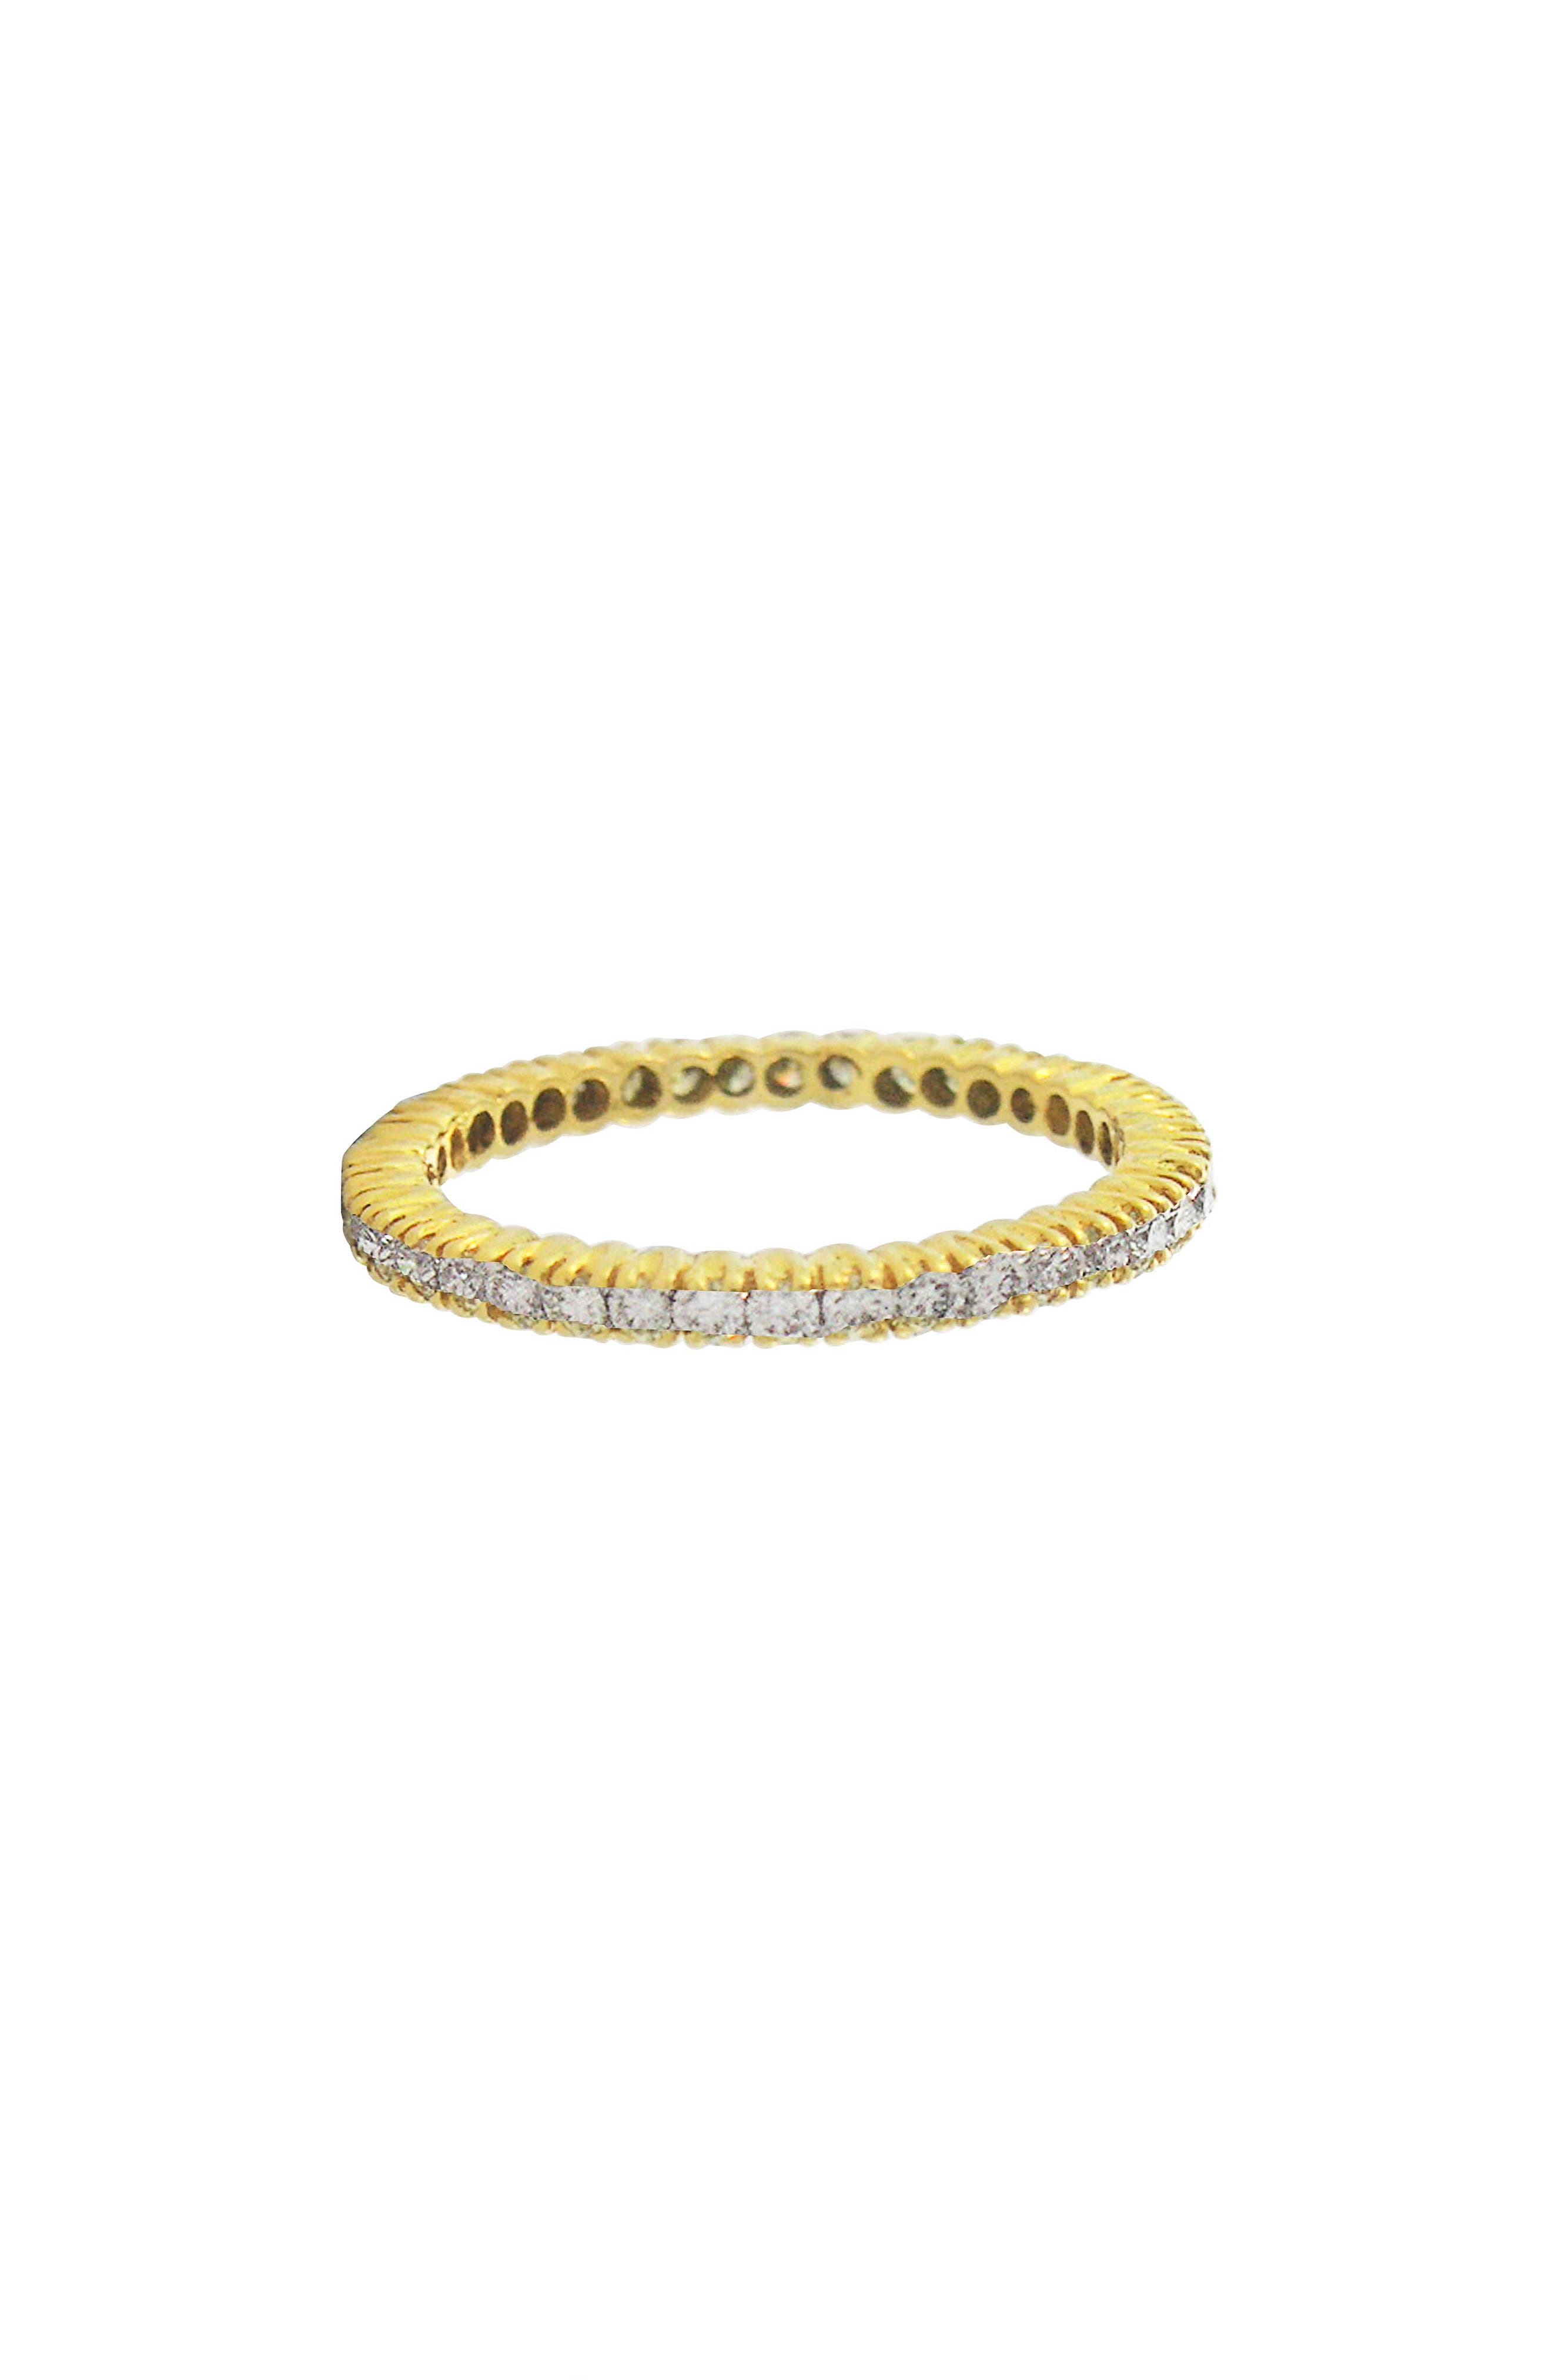 SETHI COUTURE, Prong Set Diamond Eternity Band, Main thumbnail 1, color, GOLD/ DIAMOND